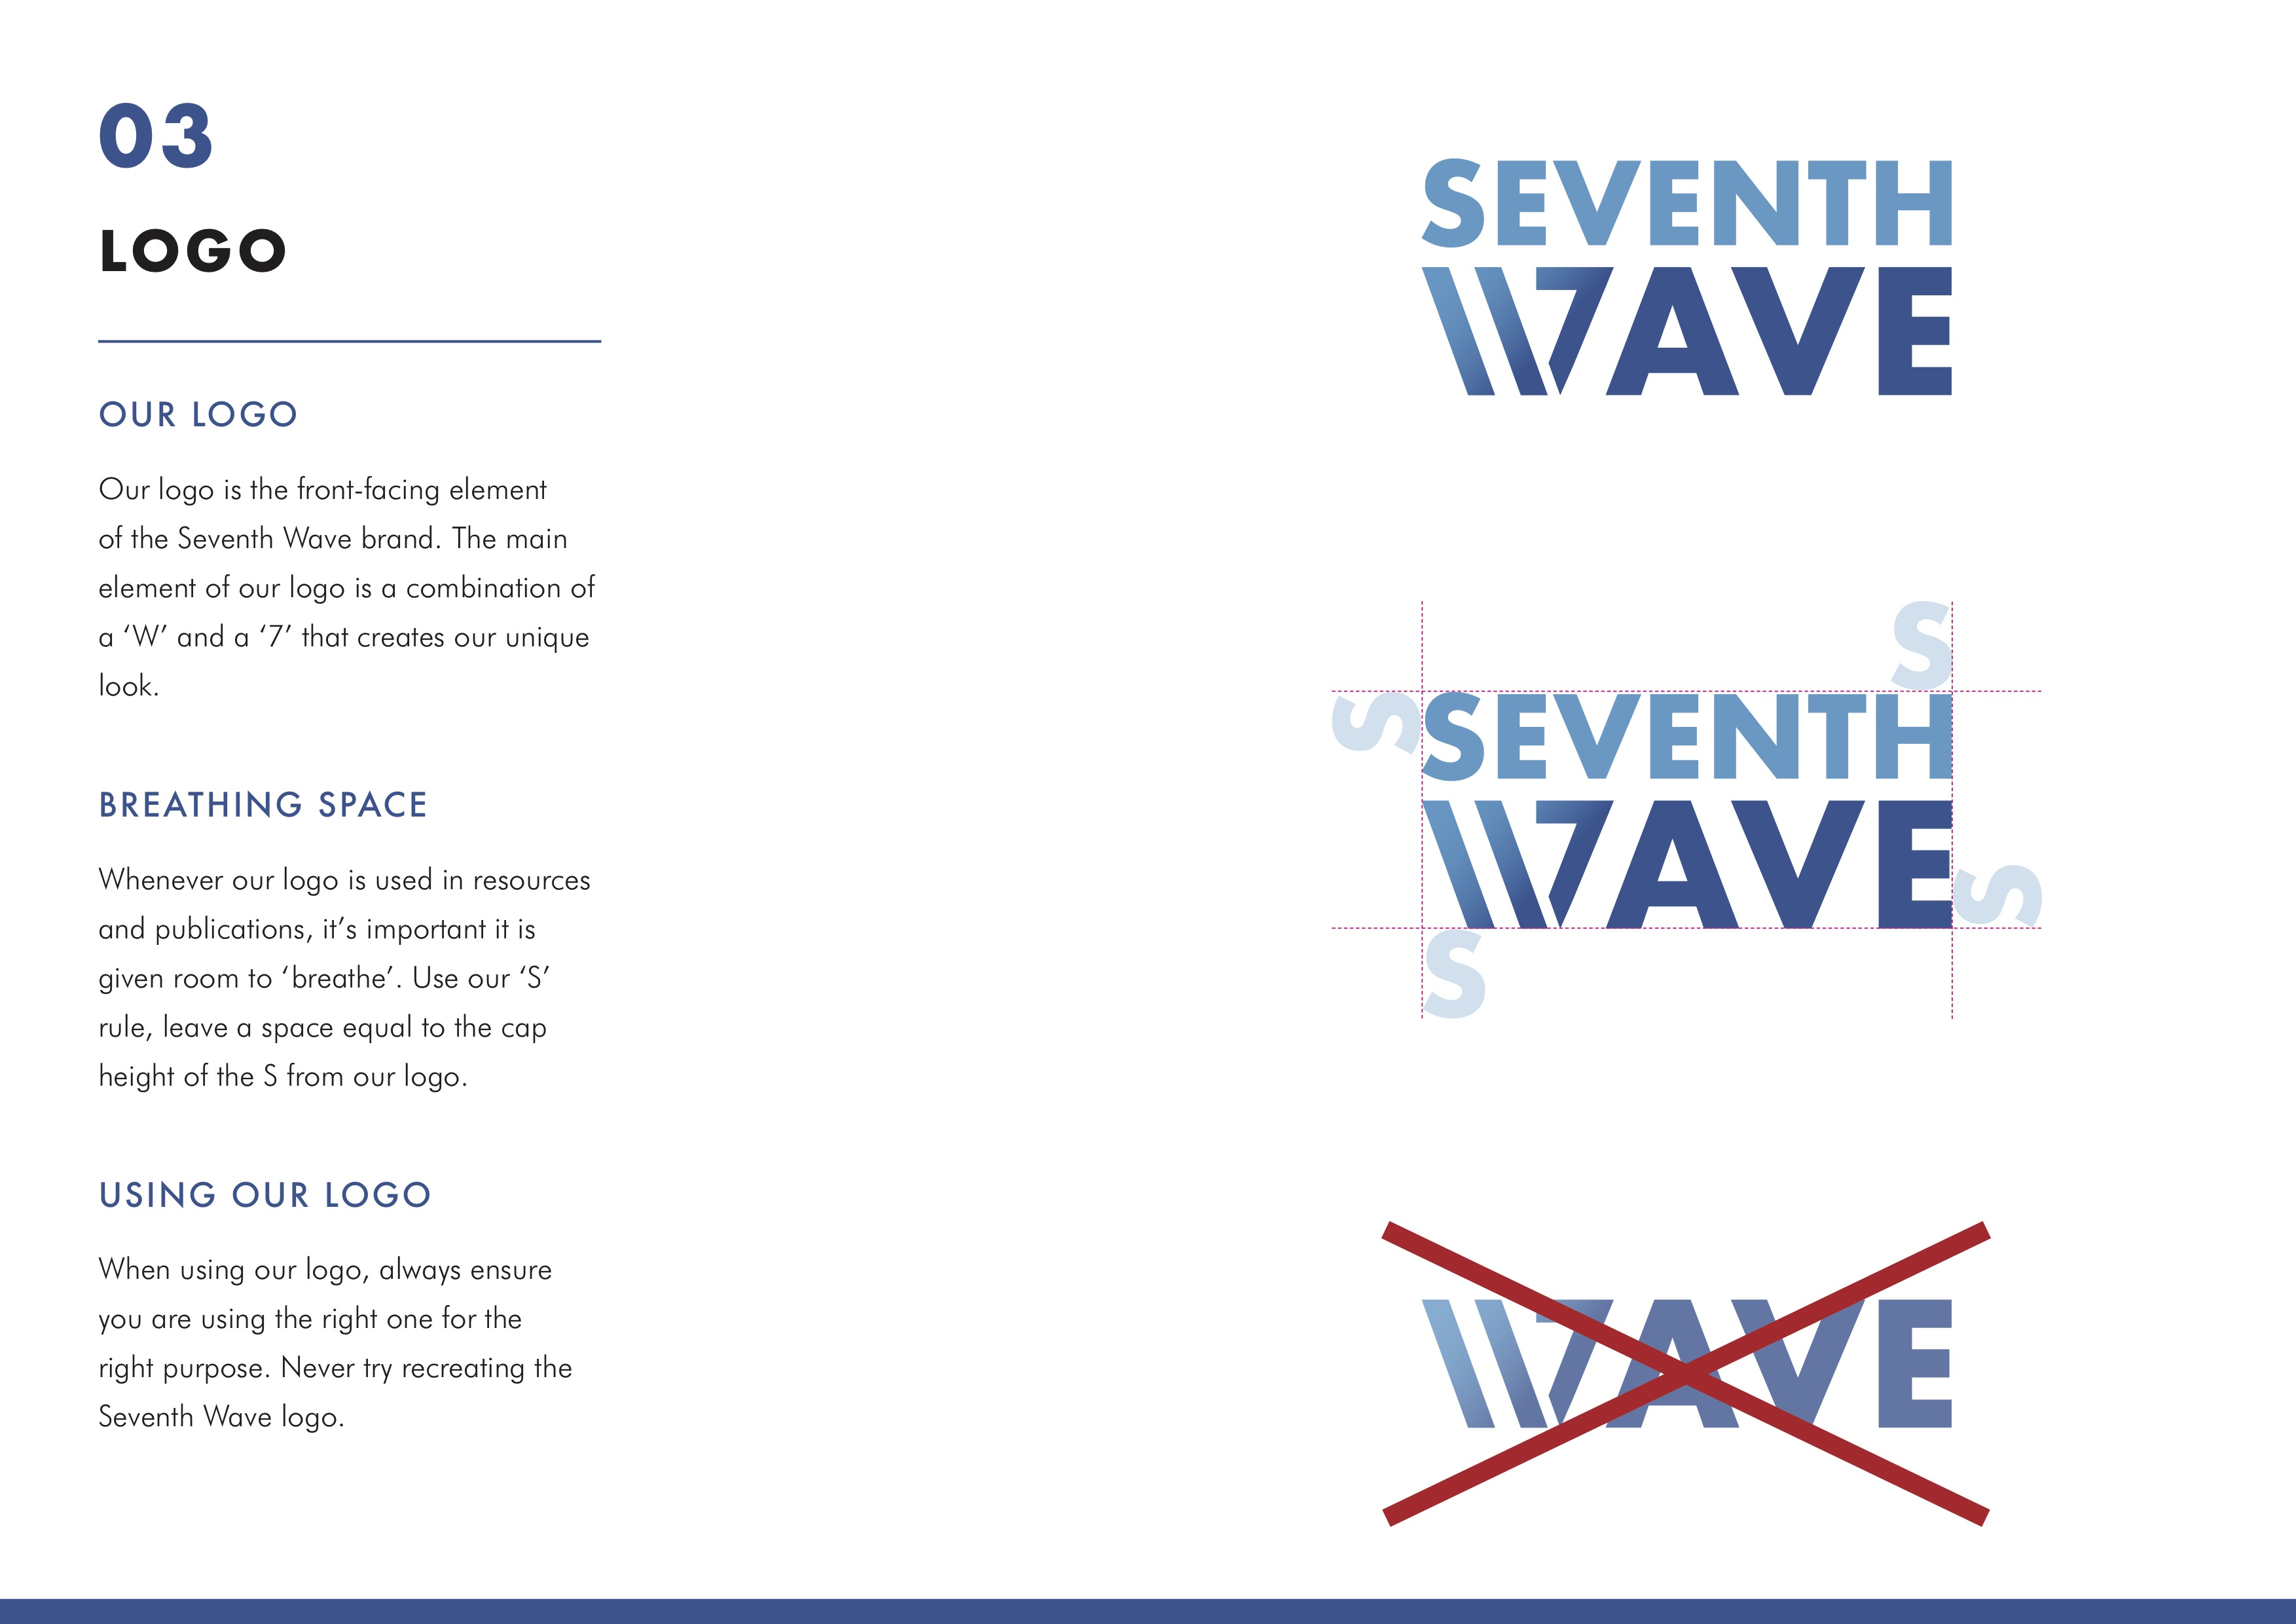 Seventh Wave Corporate Training Brand Guidelines